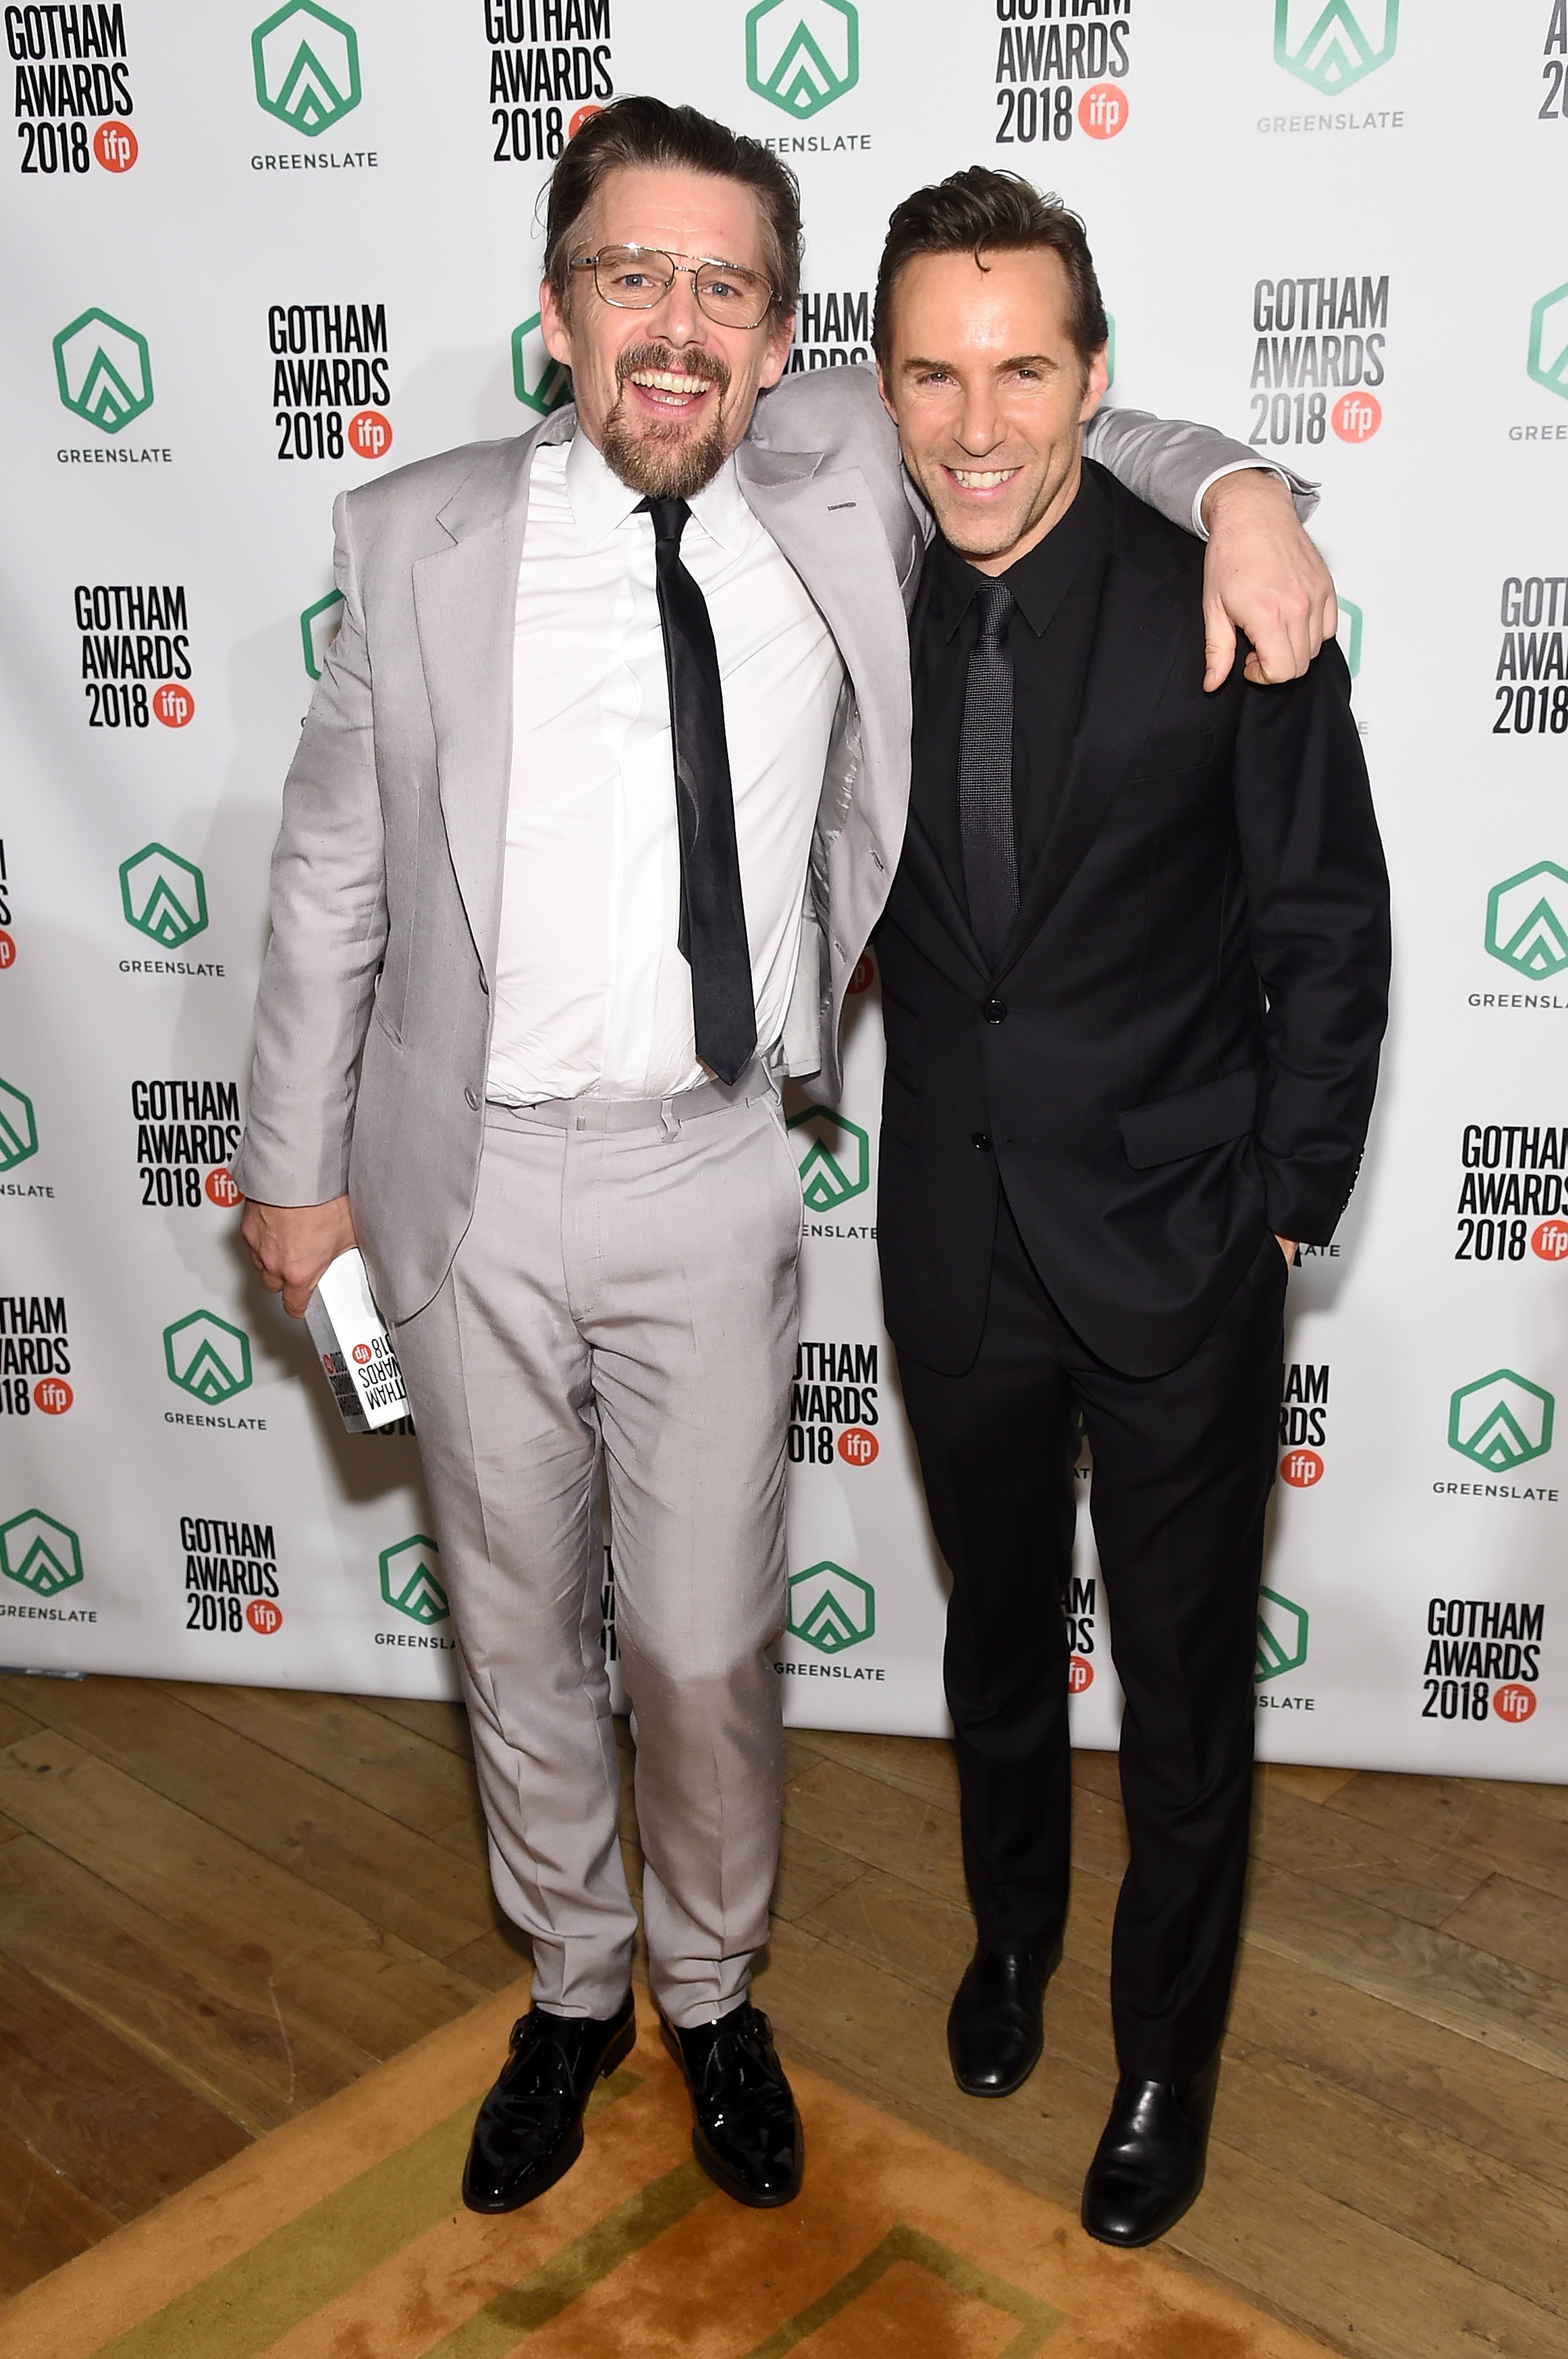 Ethan Hawke and Alessandro Nivola backstage in the GreenSlate Greenroom during IFP's 28th Annual Gotham Independent Film Awards at Cipriani, Wall Street on November 26, 2018 in New